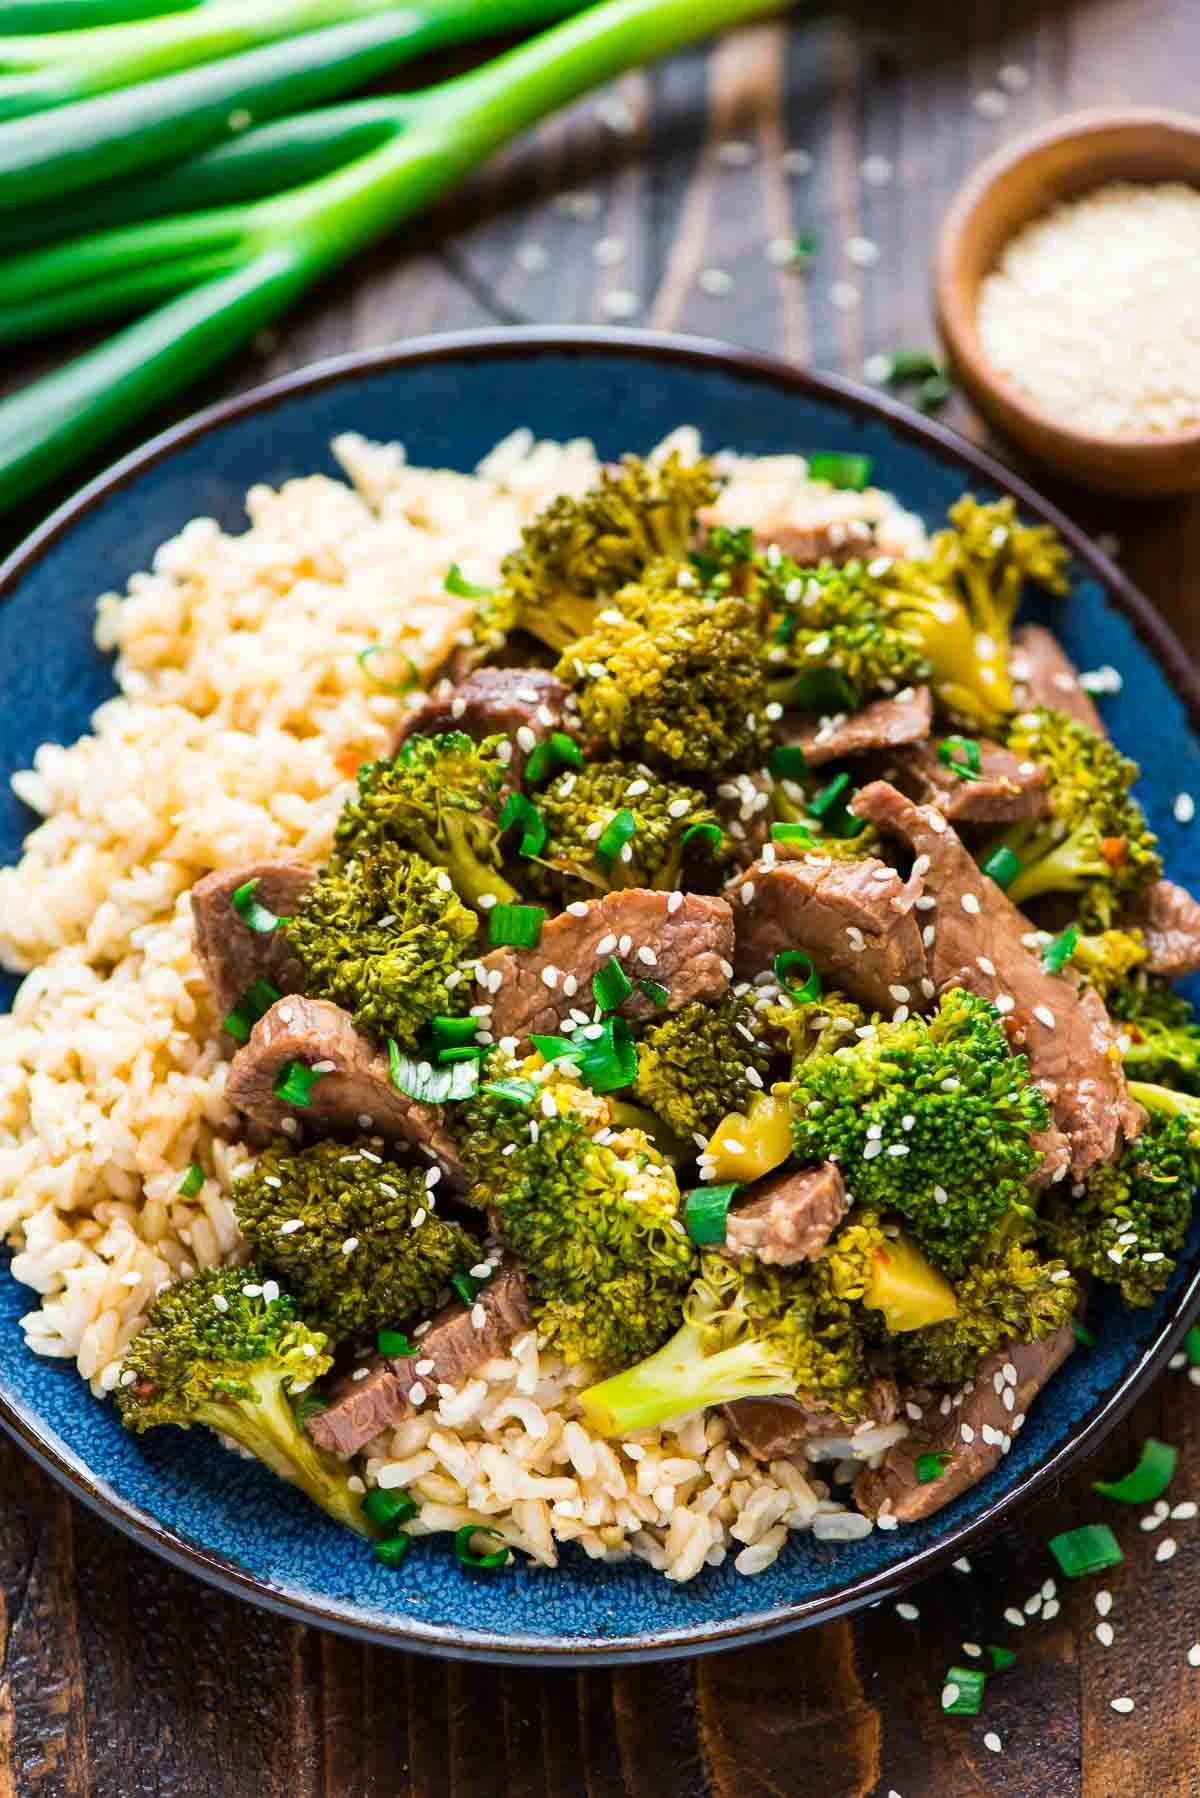 Slow Cooker Beef and Broccoli  -  This slow cooker beef and broccoli only takes two hours to cook, so get it started as soon as you get home and dinner will be ready at the perfect time. Get the recipe .